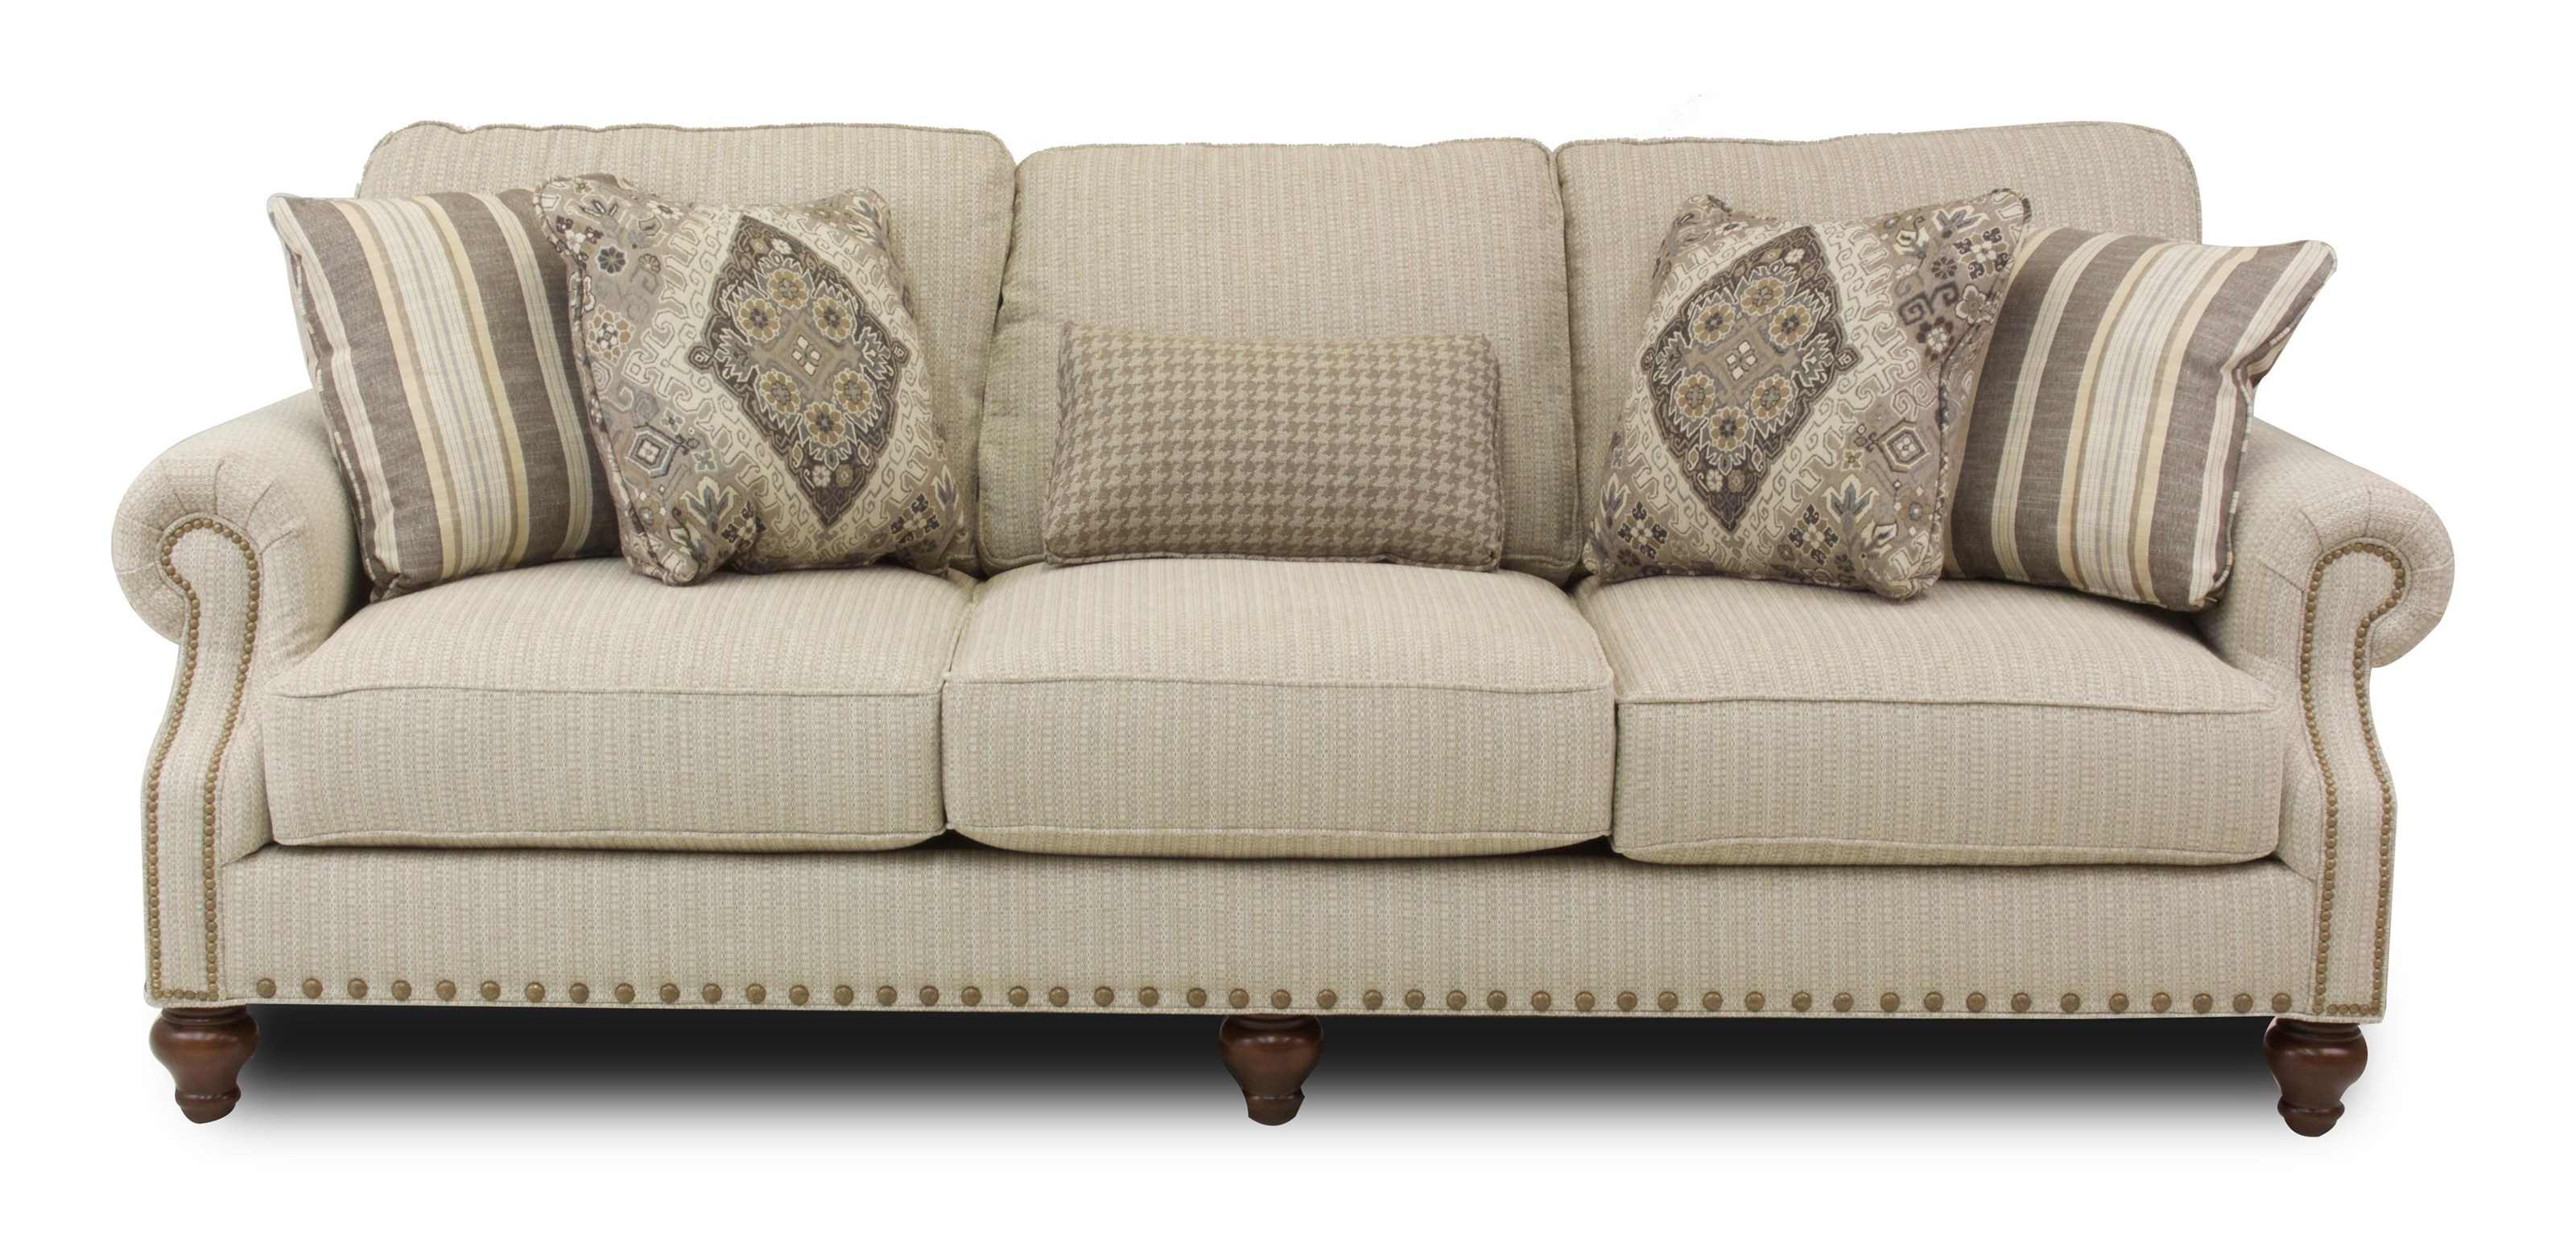 Hickory Craft Marion Traditional Sofa - Item Number: 17762-S